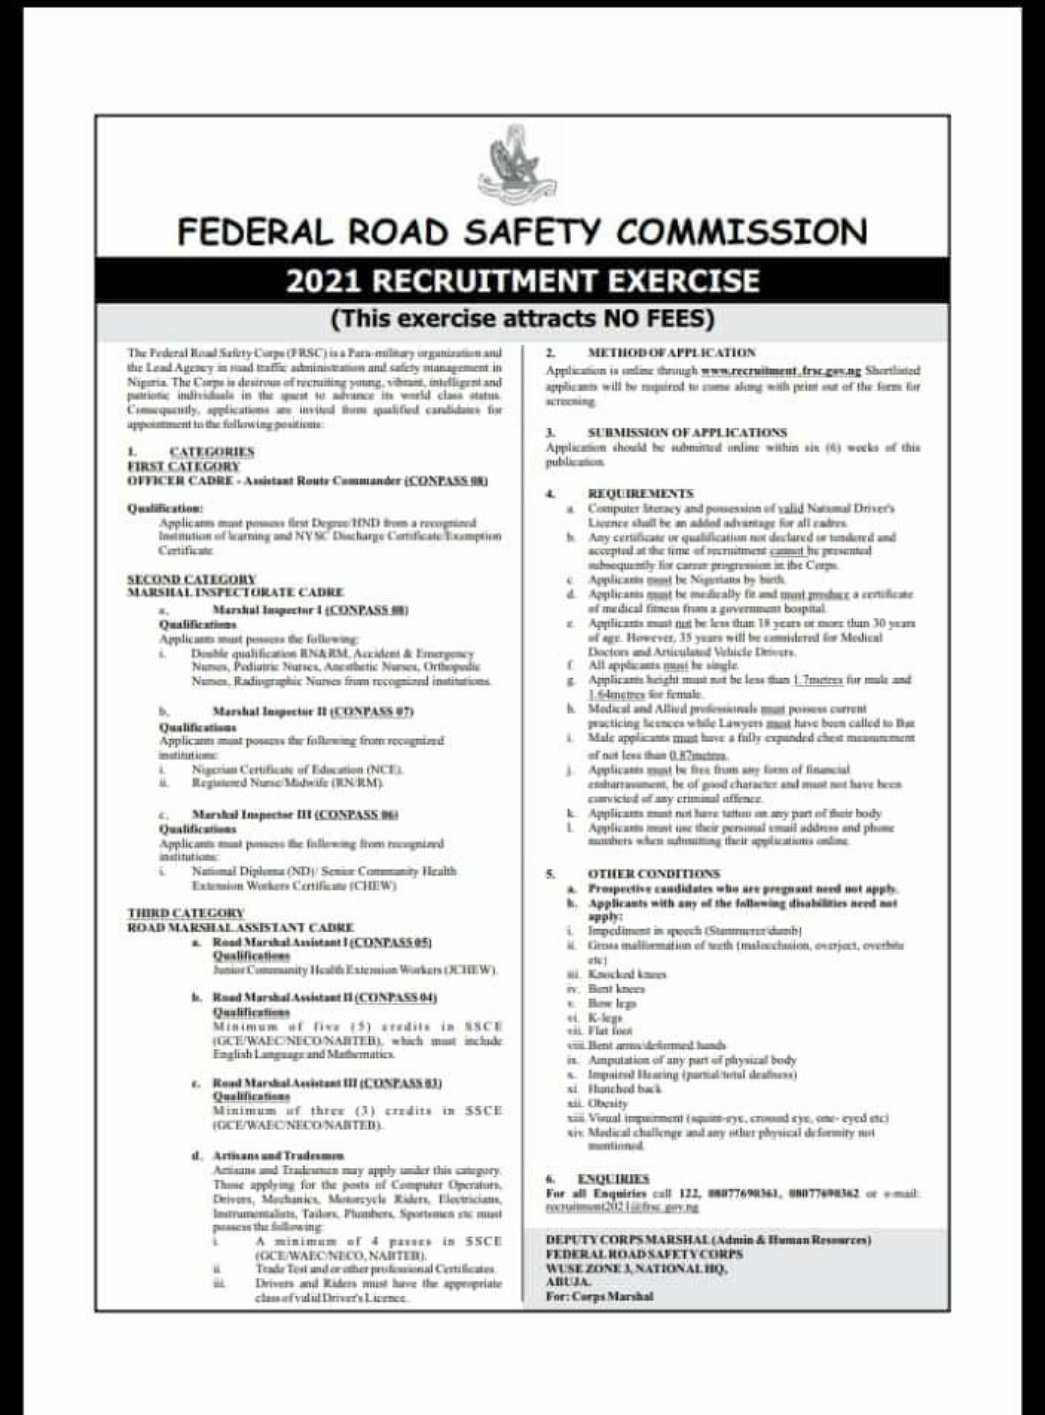 FRSC Recruitment 2021: Link To Apply For Federal Road Safety Corps FRSC Recruitment 2021